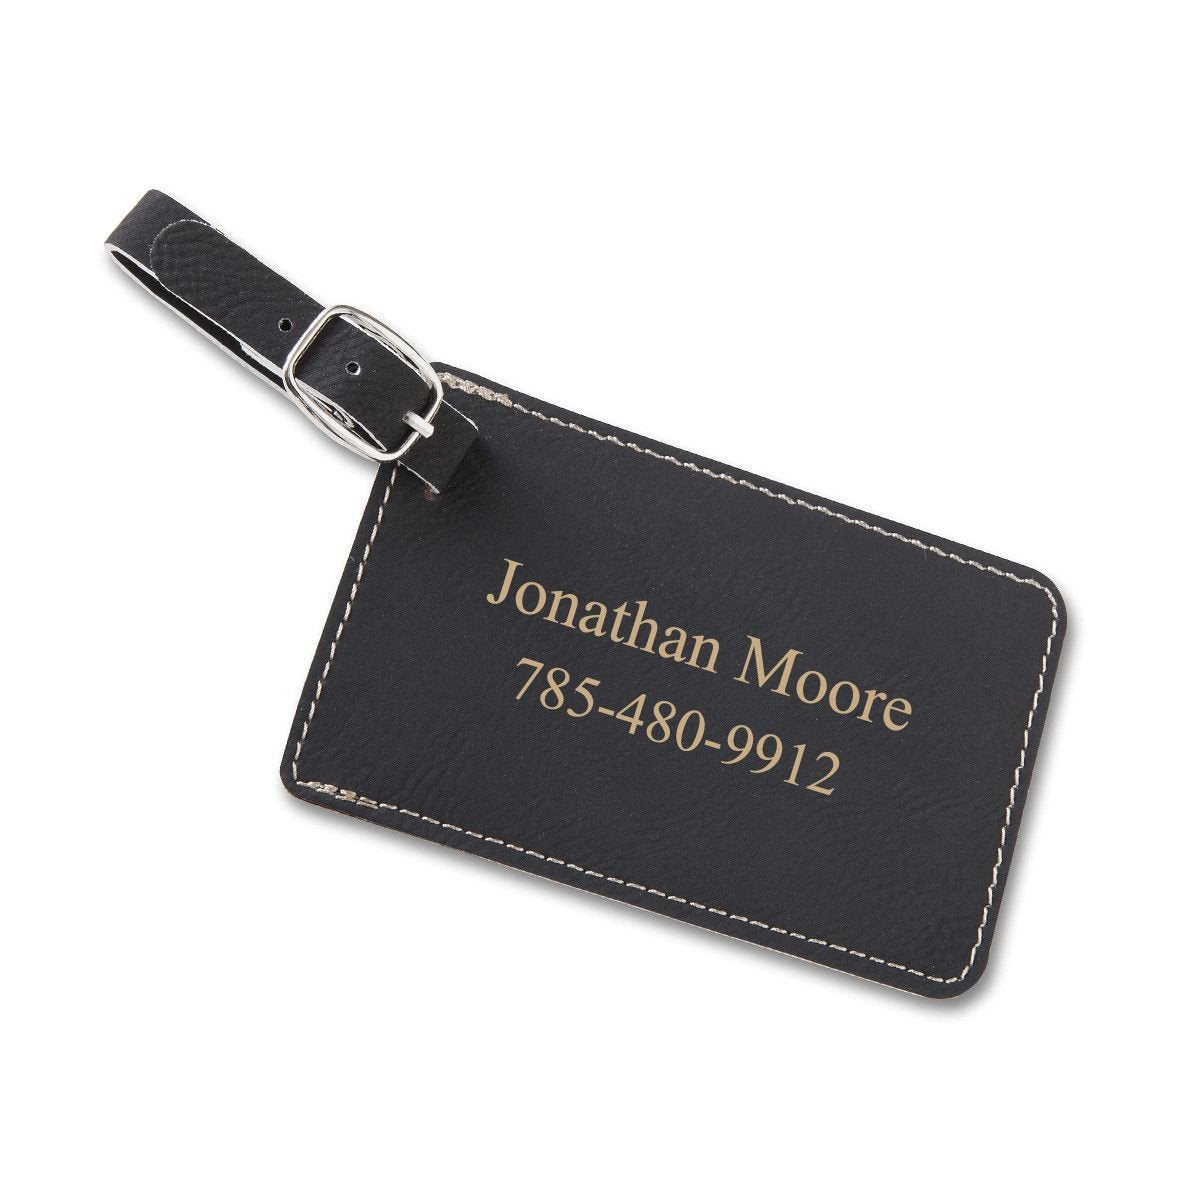 Personalized-Leatherette-Luggage-Tags